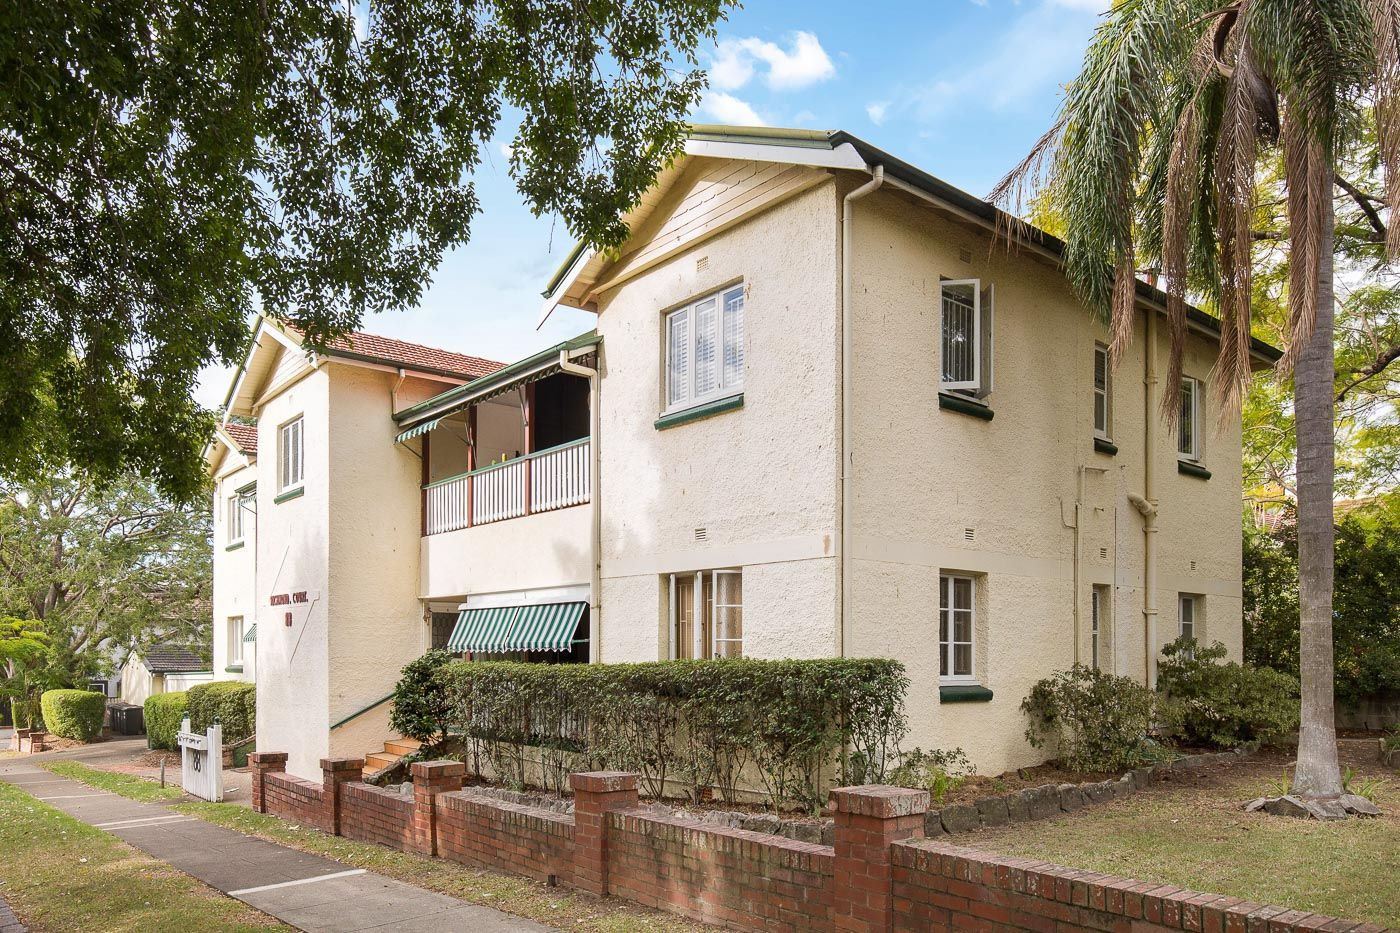 2/88 Moreton Street New Farm 4005